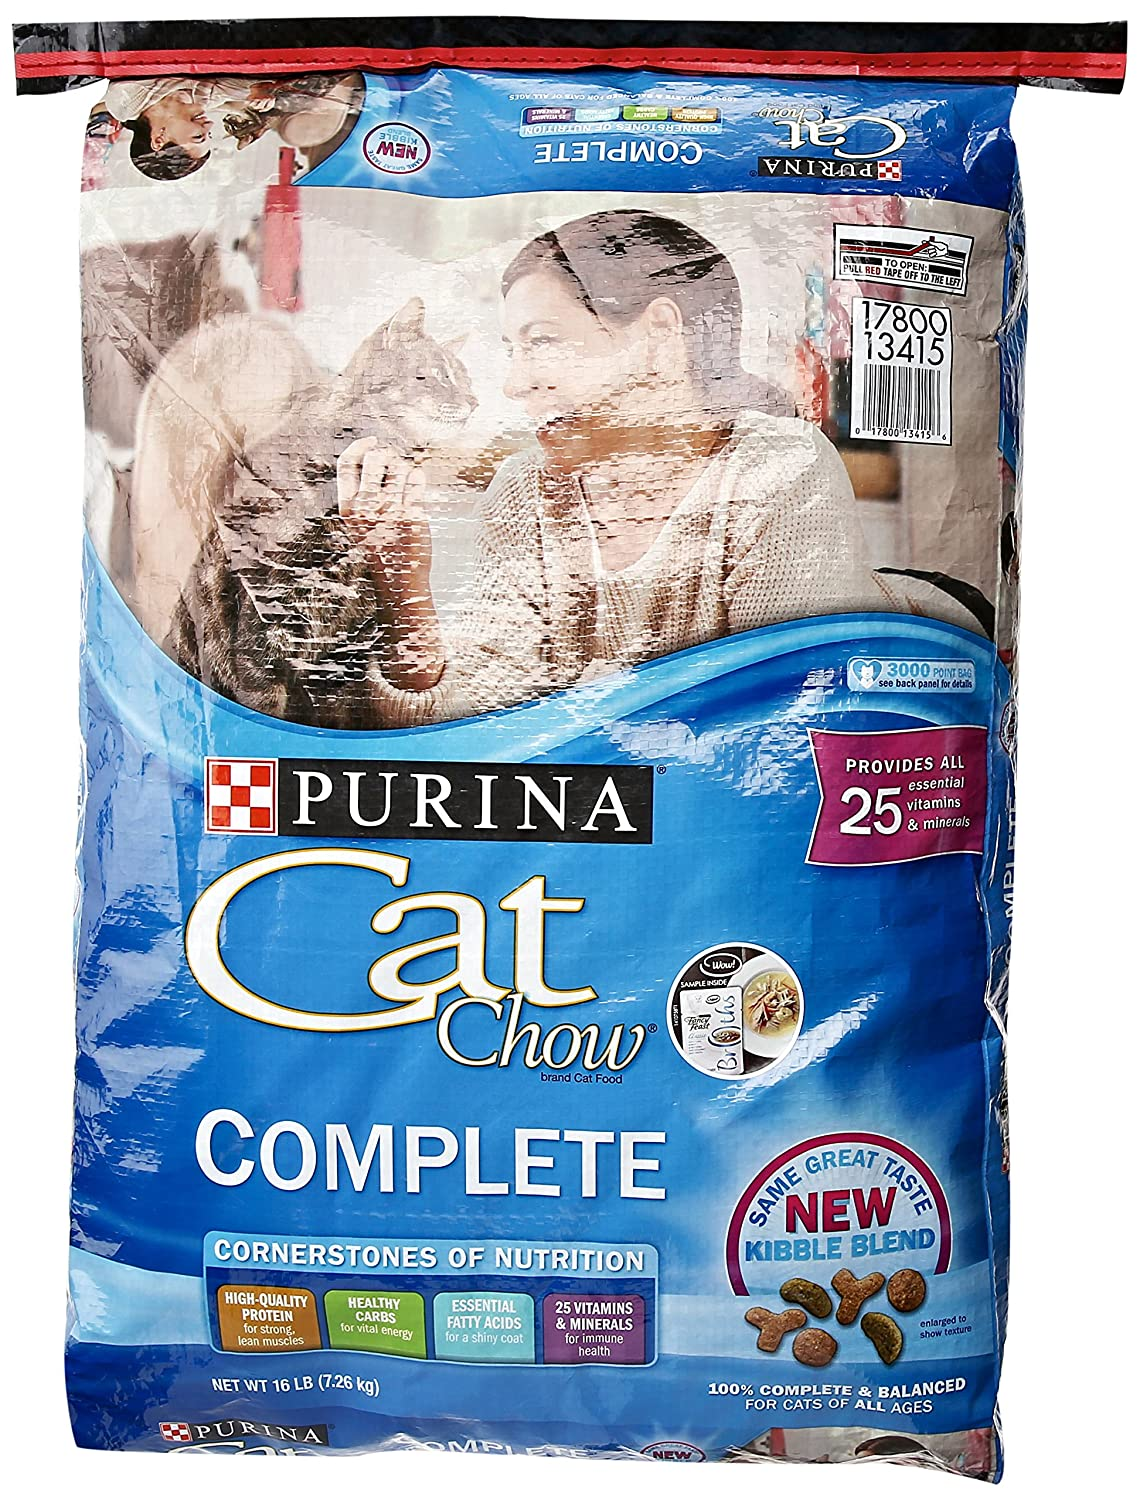 Cat Chow Complete, 16 Lb